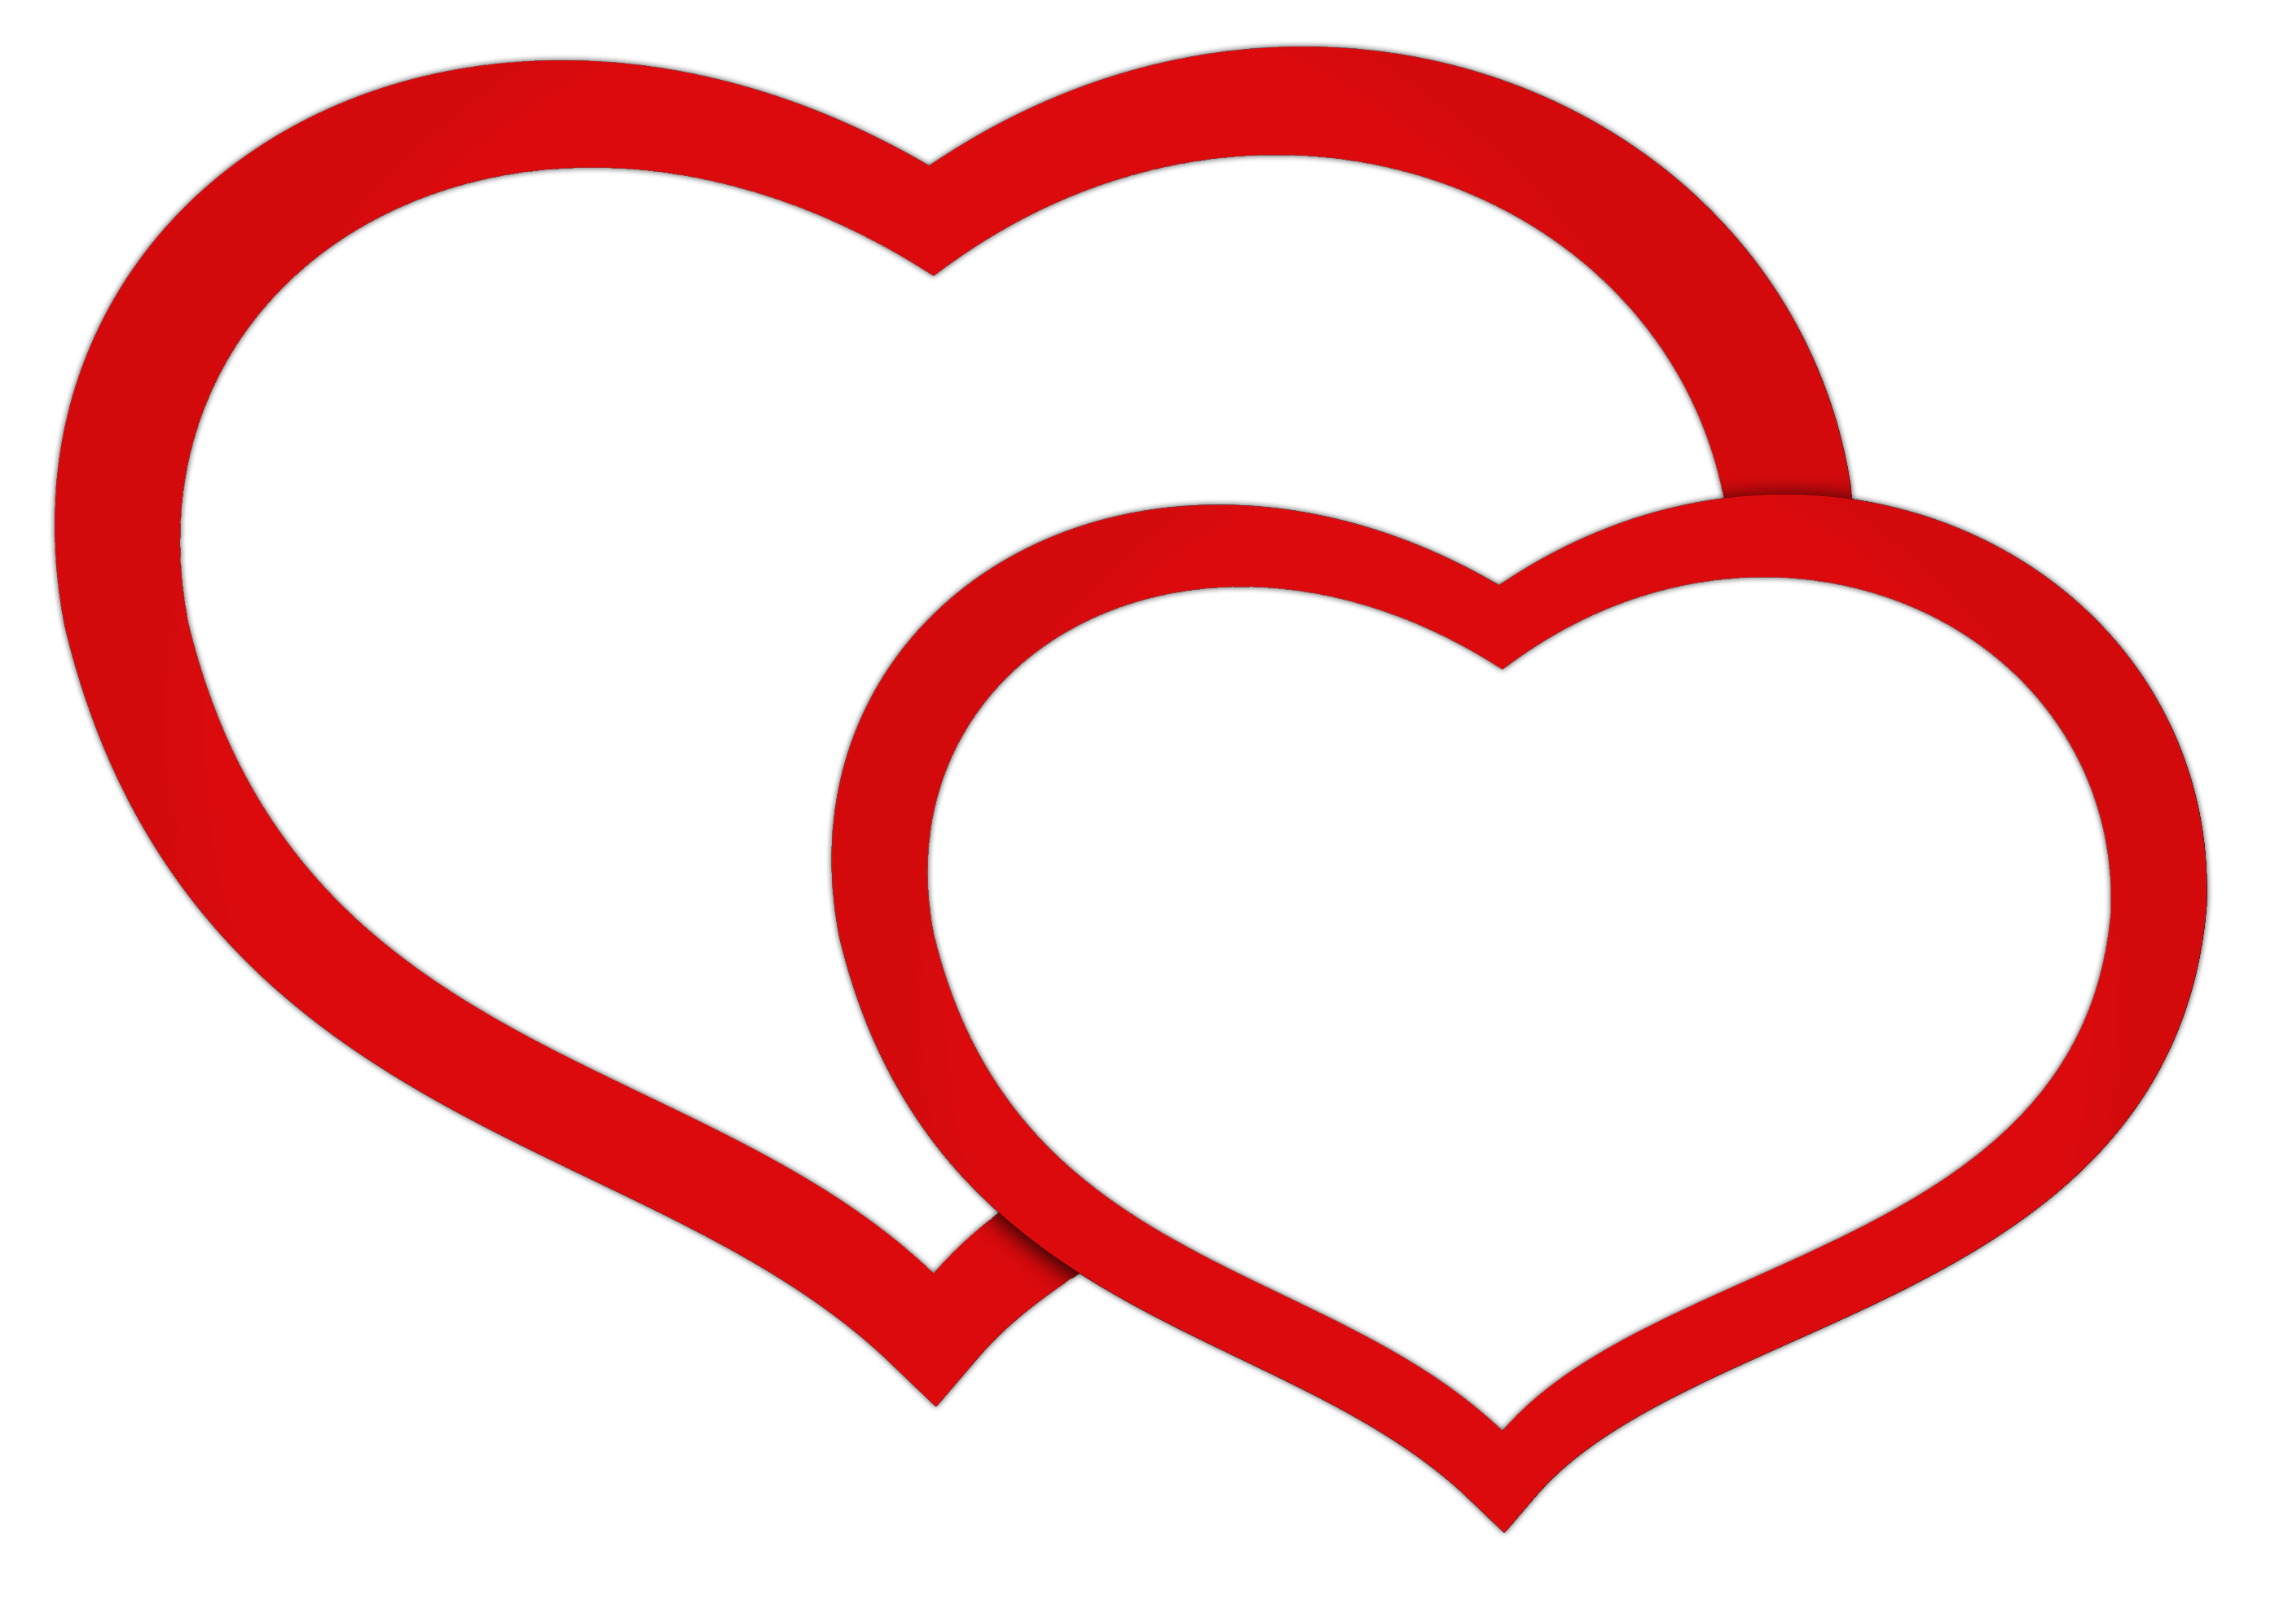 Double Hearts Clipart